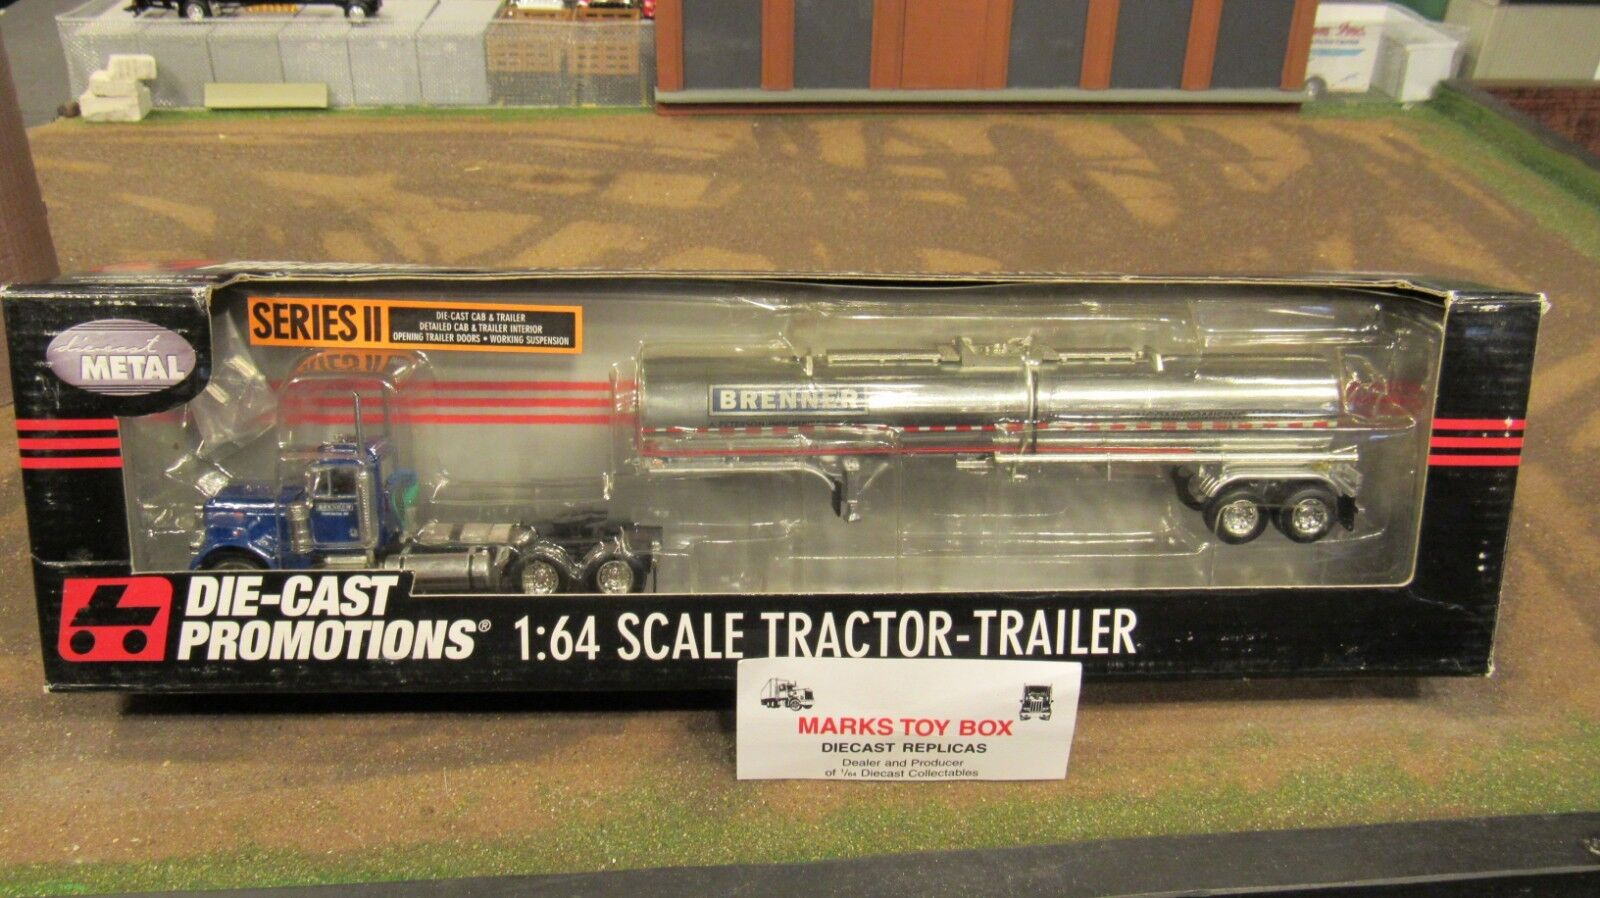 DCP 30723 Brenner Corp Pete 379 Semi Cab Camion Chemical tanker trailer 1 64 FC